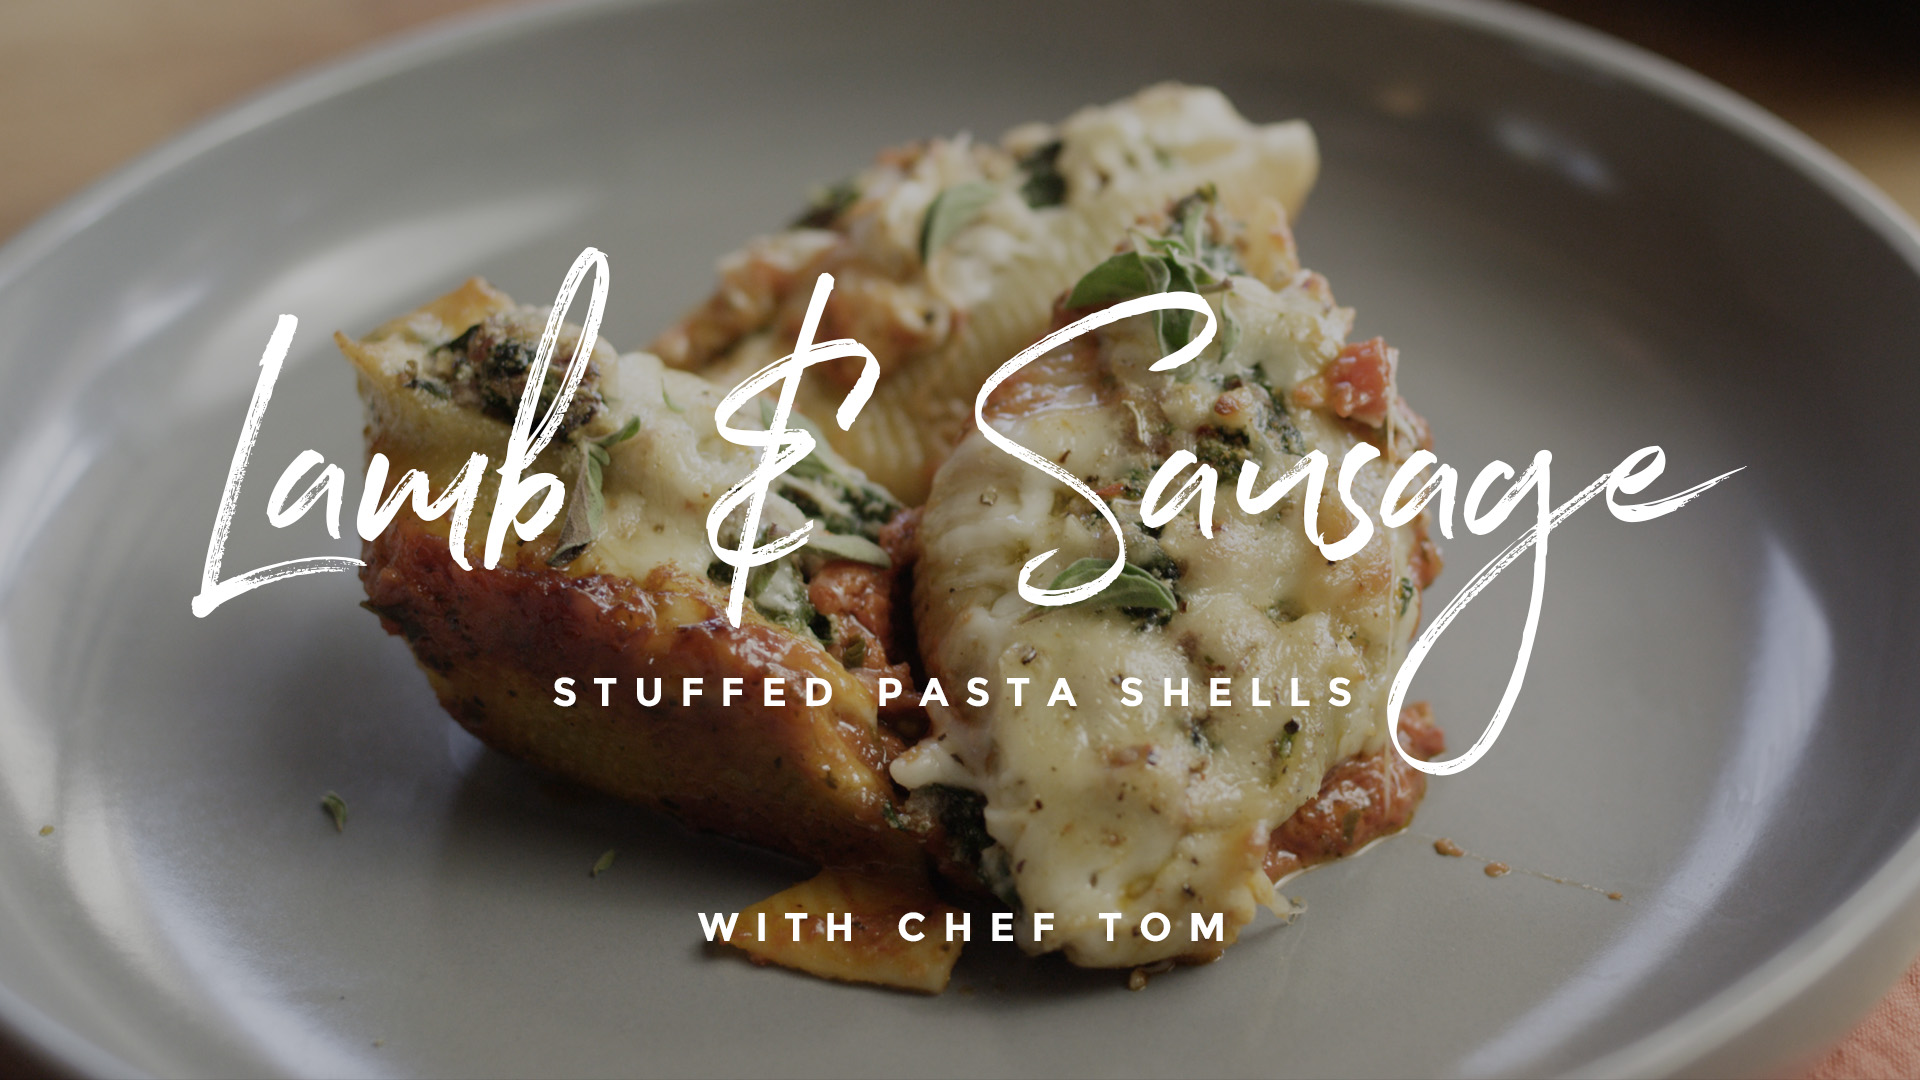 Lamb & Sausage Stuffed Pasta Shells Recipe